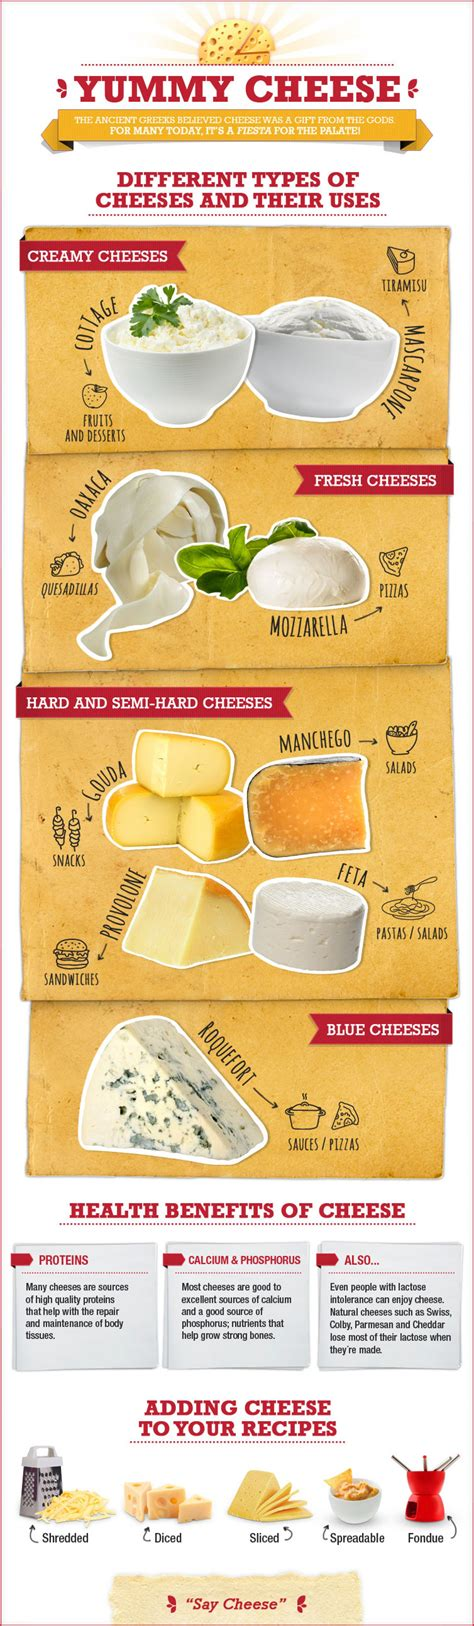 cottage cheese uses a cheese course the basic types and uses of cheese